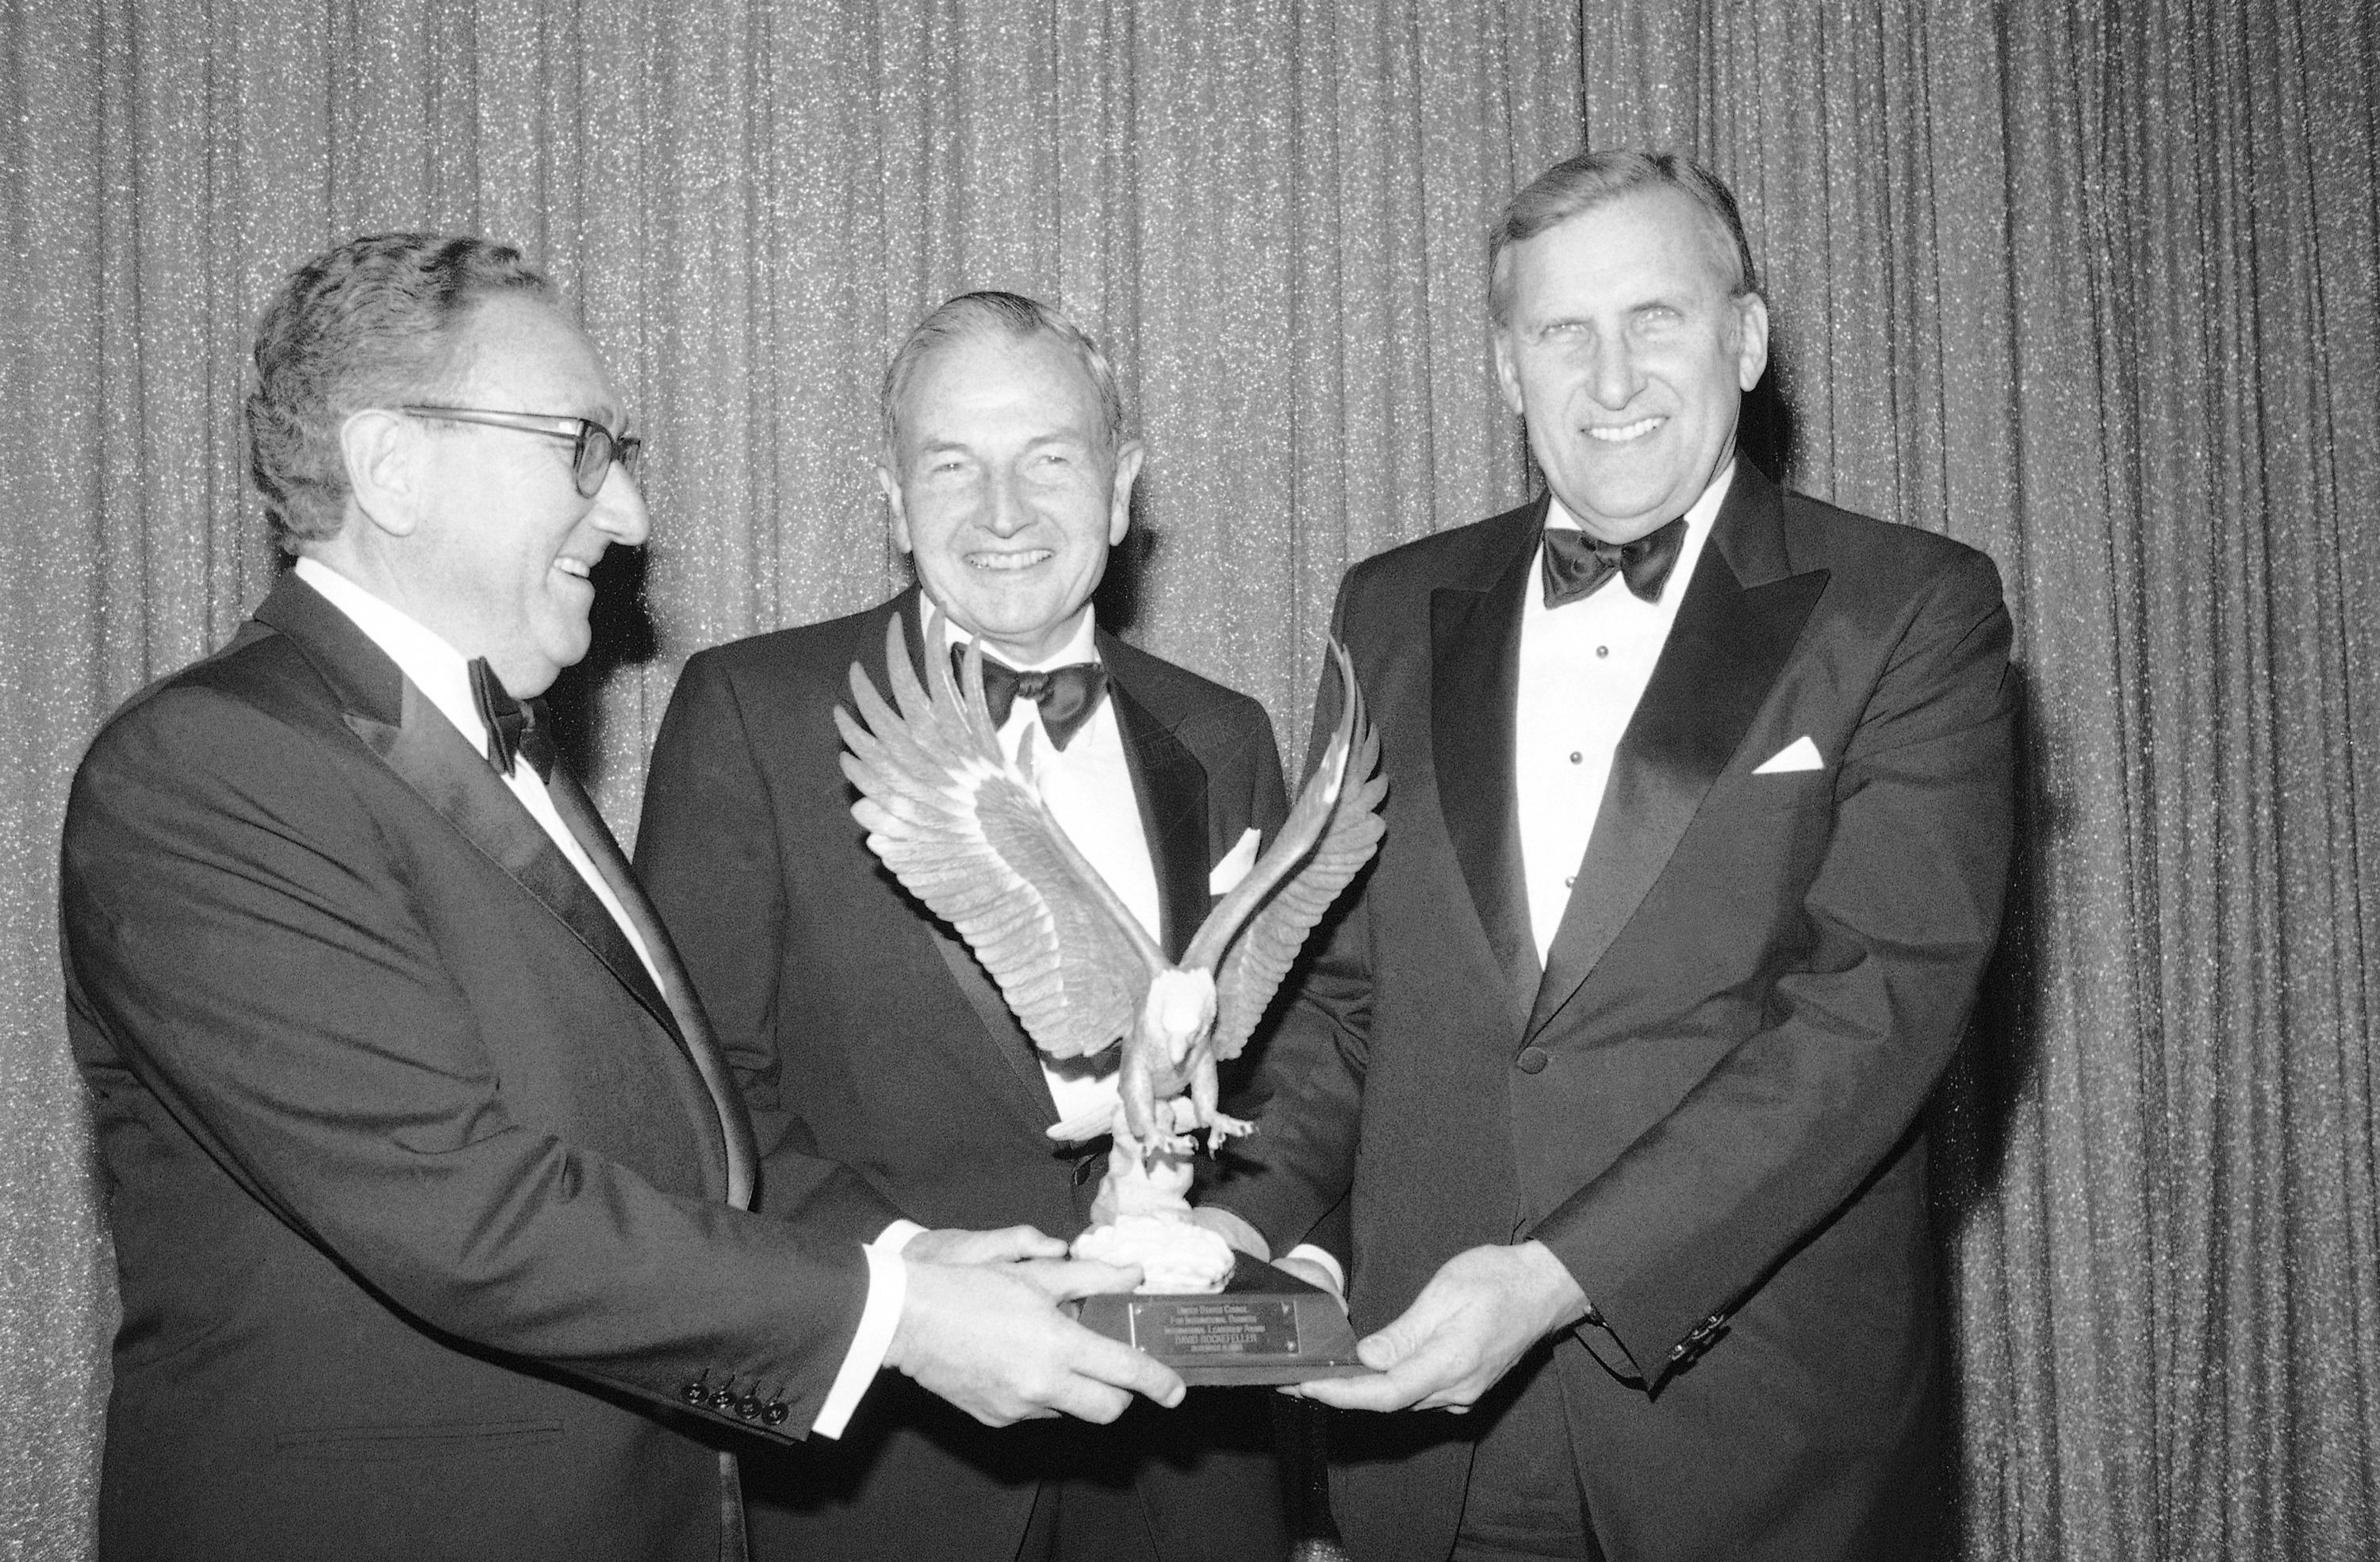 David Rockefeller, center, chairman of the Chase Manhattan's Bank's International Advisory Committee and the banks former chairman of the board and chief executive officer, receives the 1983 International Leadership Award from the U.S. Council for International Business, presented by Dr. Henry A. Kissinger, former Secretary of State, left, and Ralph A. Pfeiffer, Jr., U.S. Council Chairman, at New York's Pierre Hotel on Thursday, Dec. 9, 1983. The award recognizes outstanding contributions to world trade and investment.